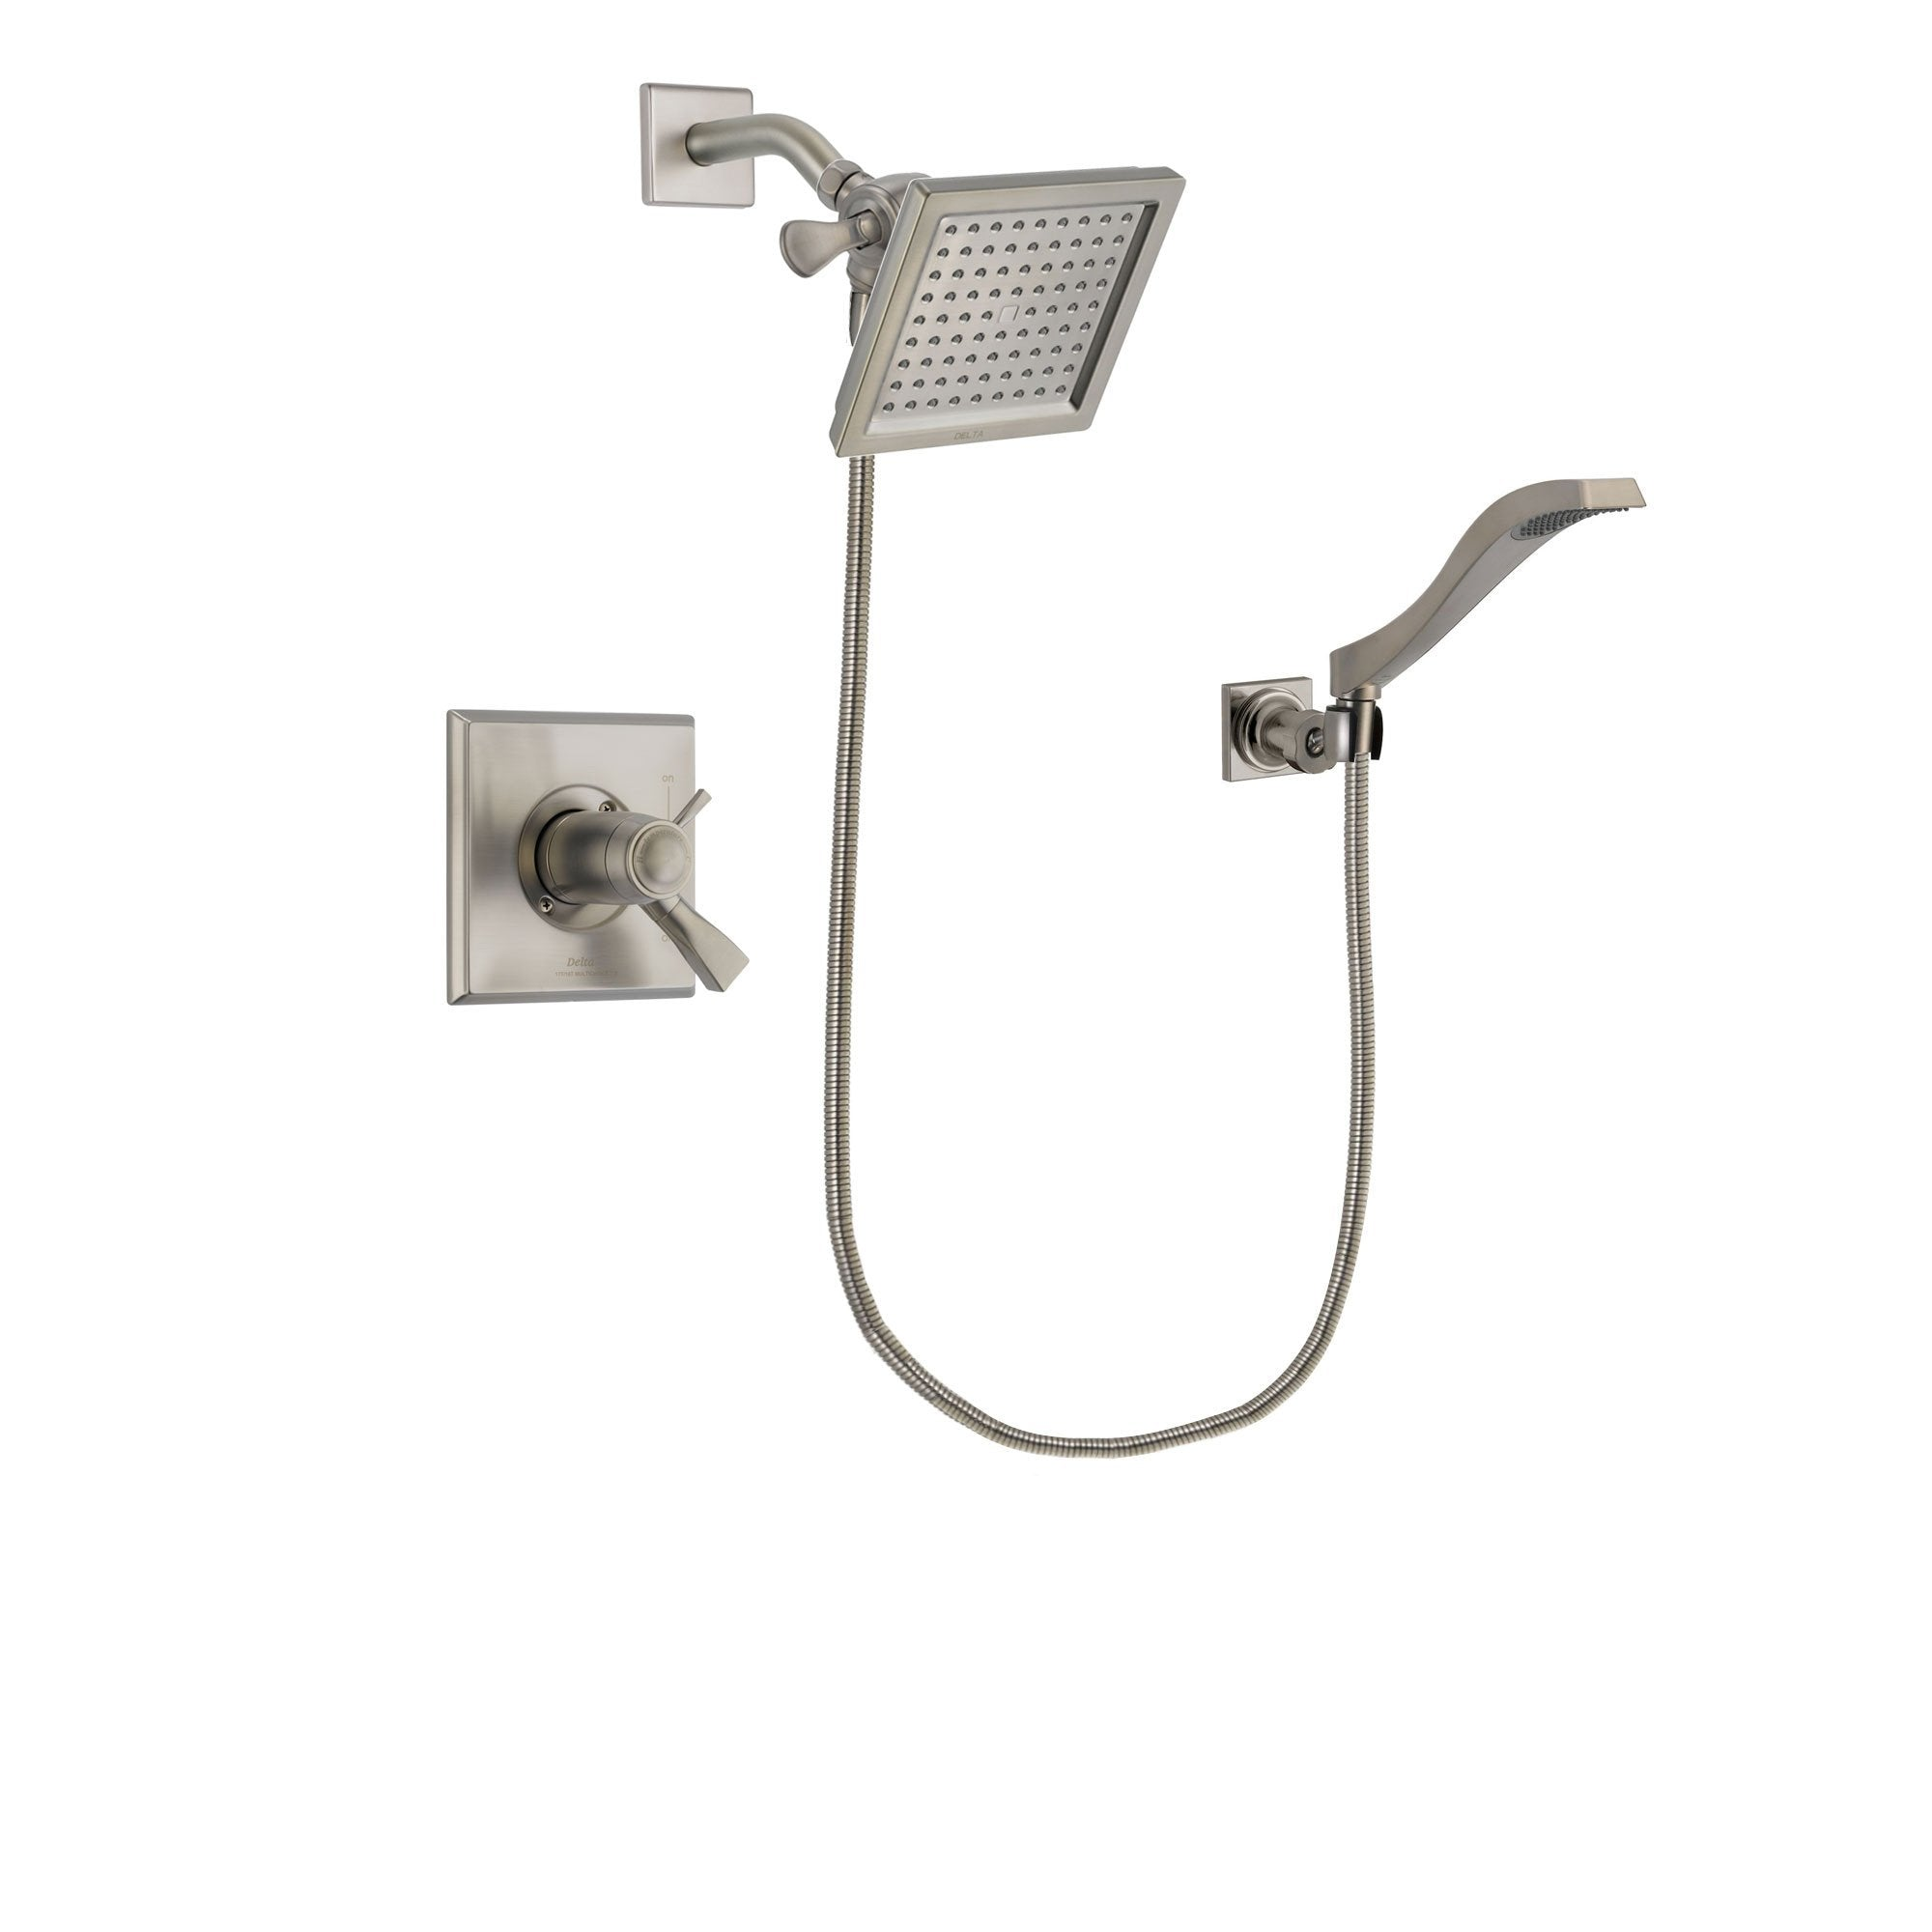 Delta Dryden Stainless Steel Finish Shower Faucet System w/ Hand Spray DSP2076V